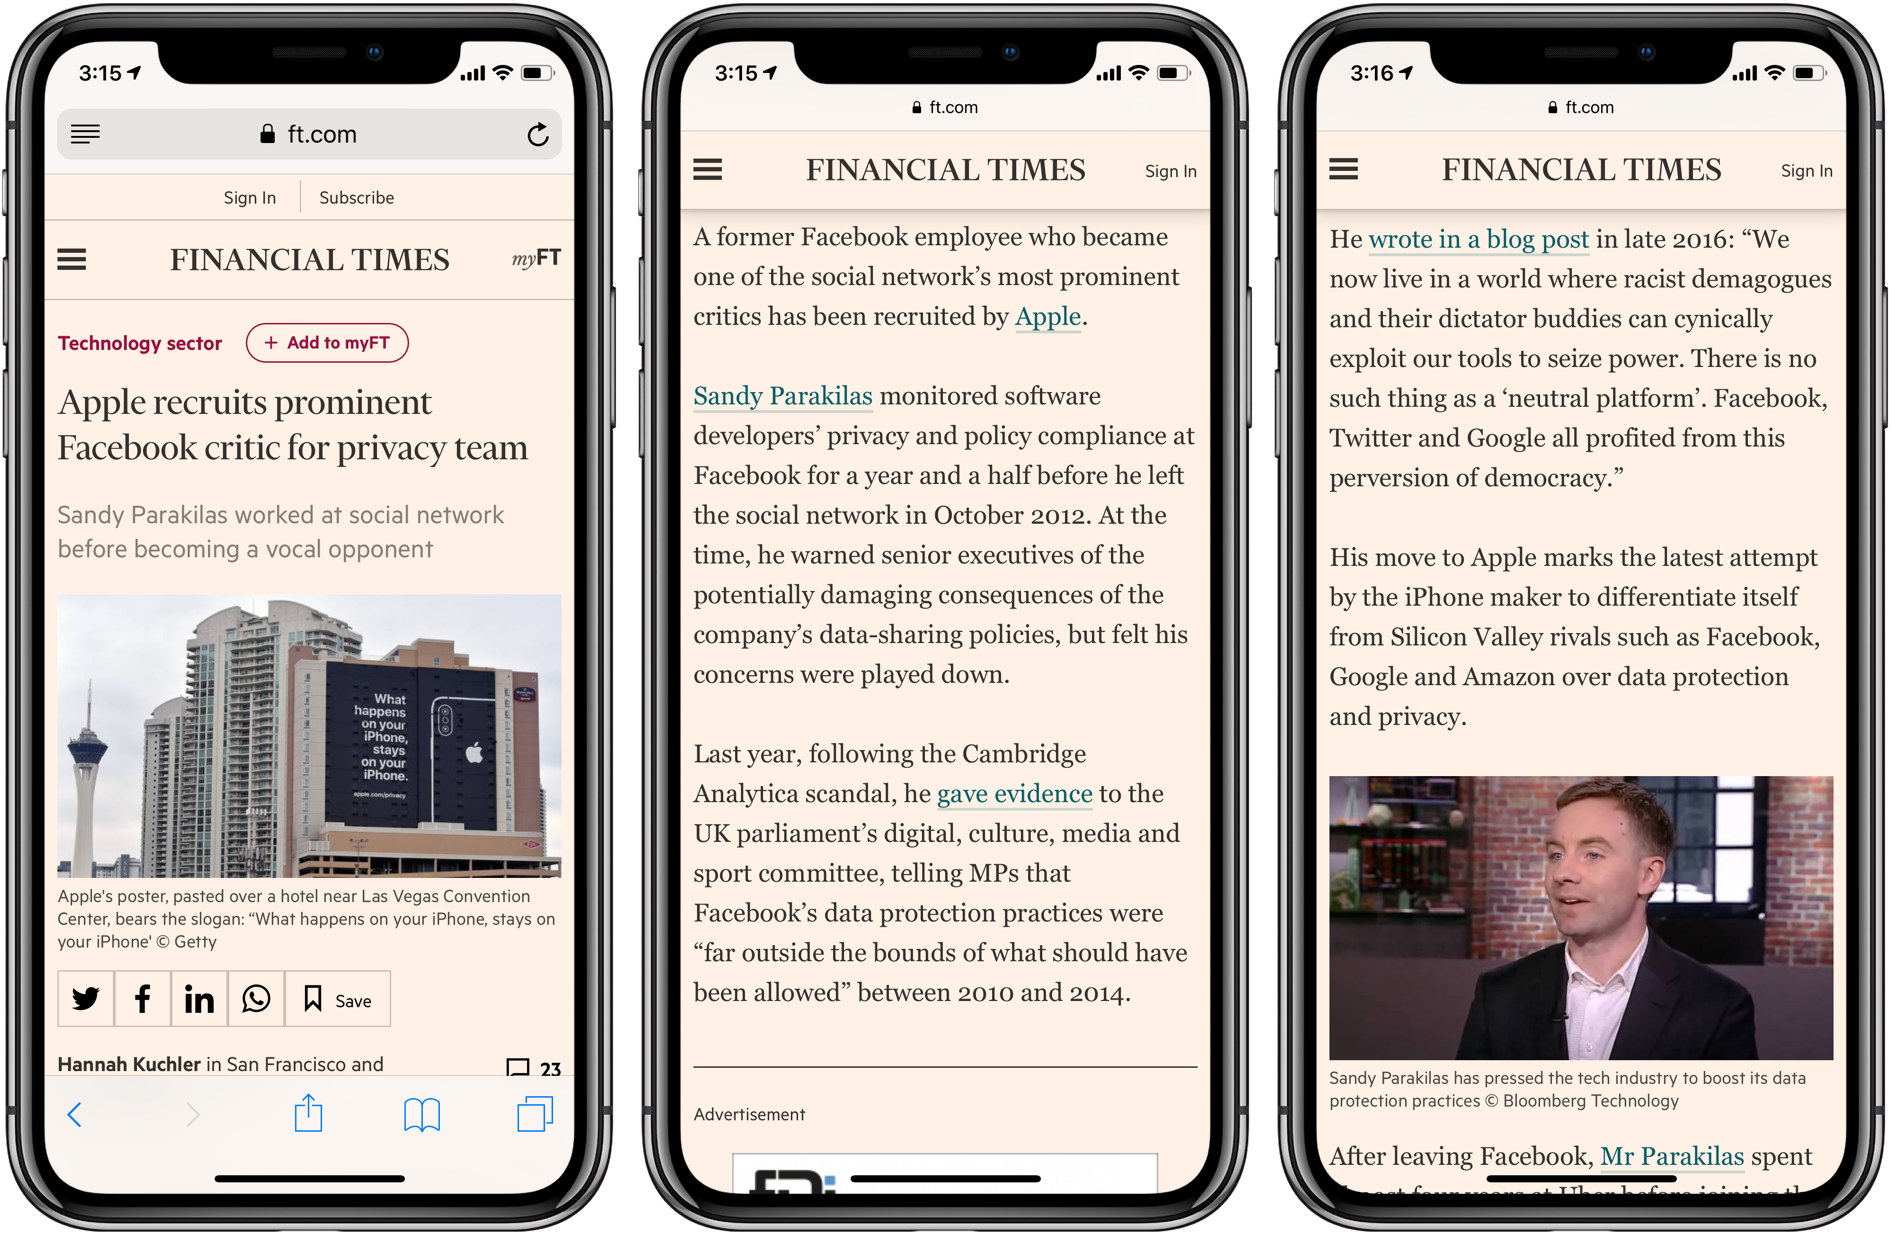 How to bypass paywalls and read articles for free in Safari for iPhone